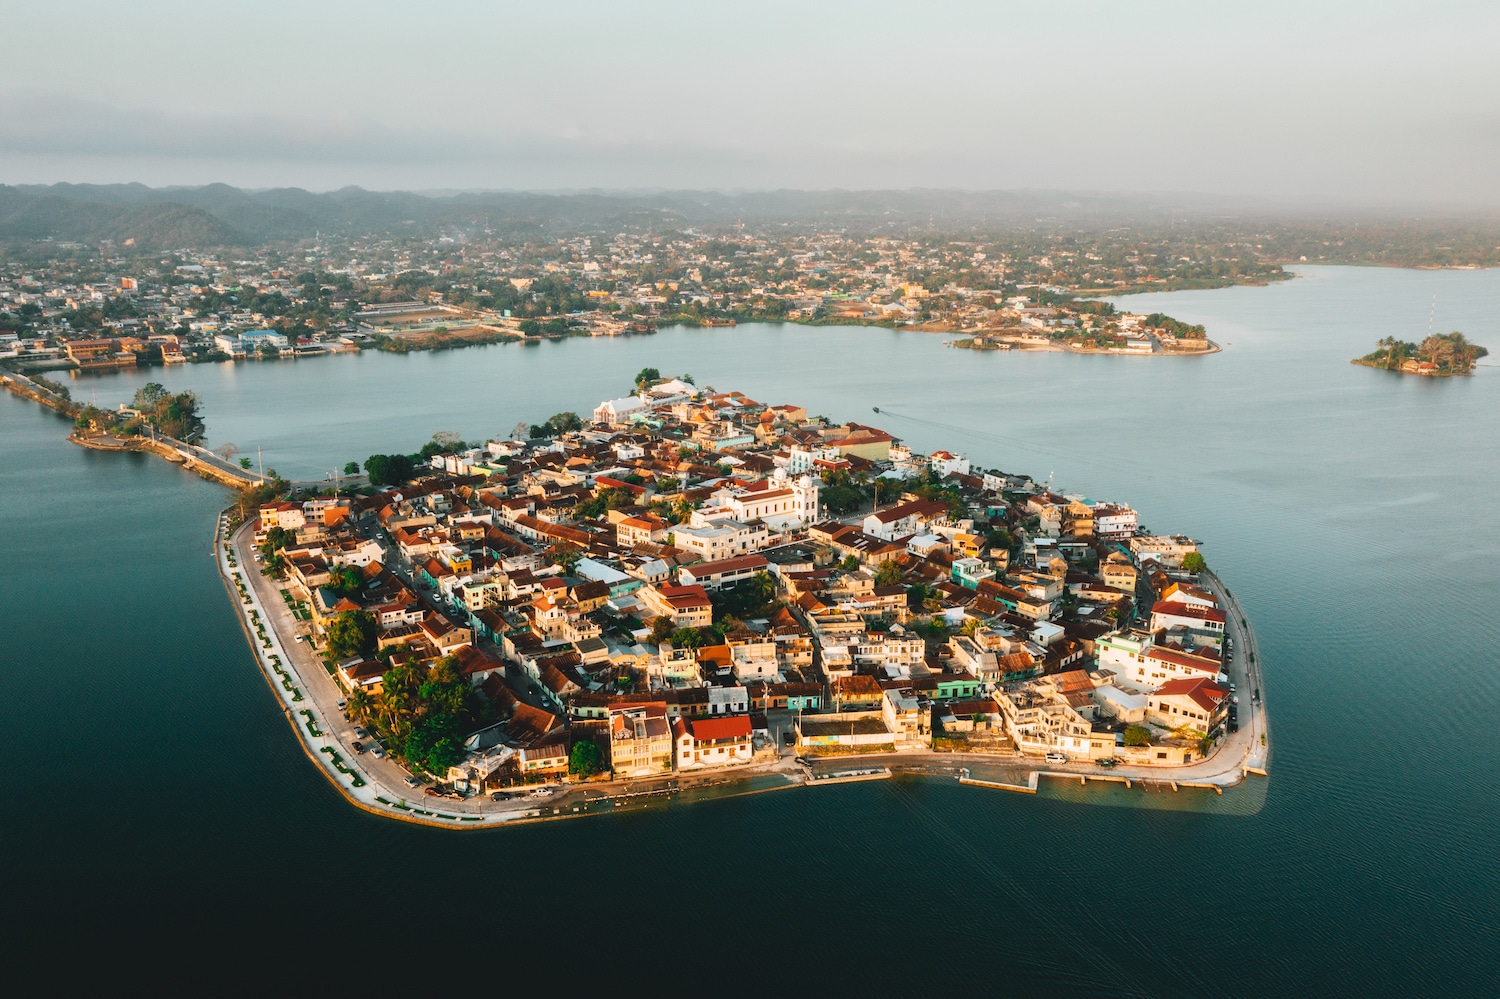 A drone view of the city of Guatemala Flores